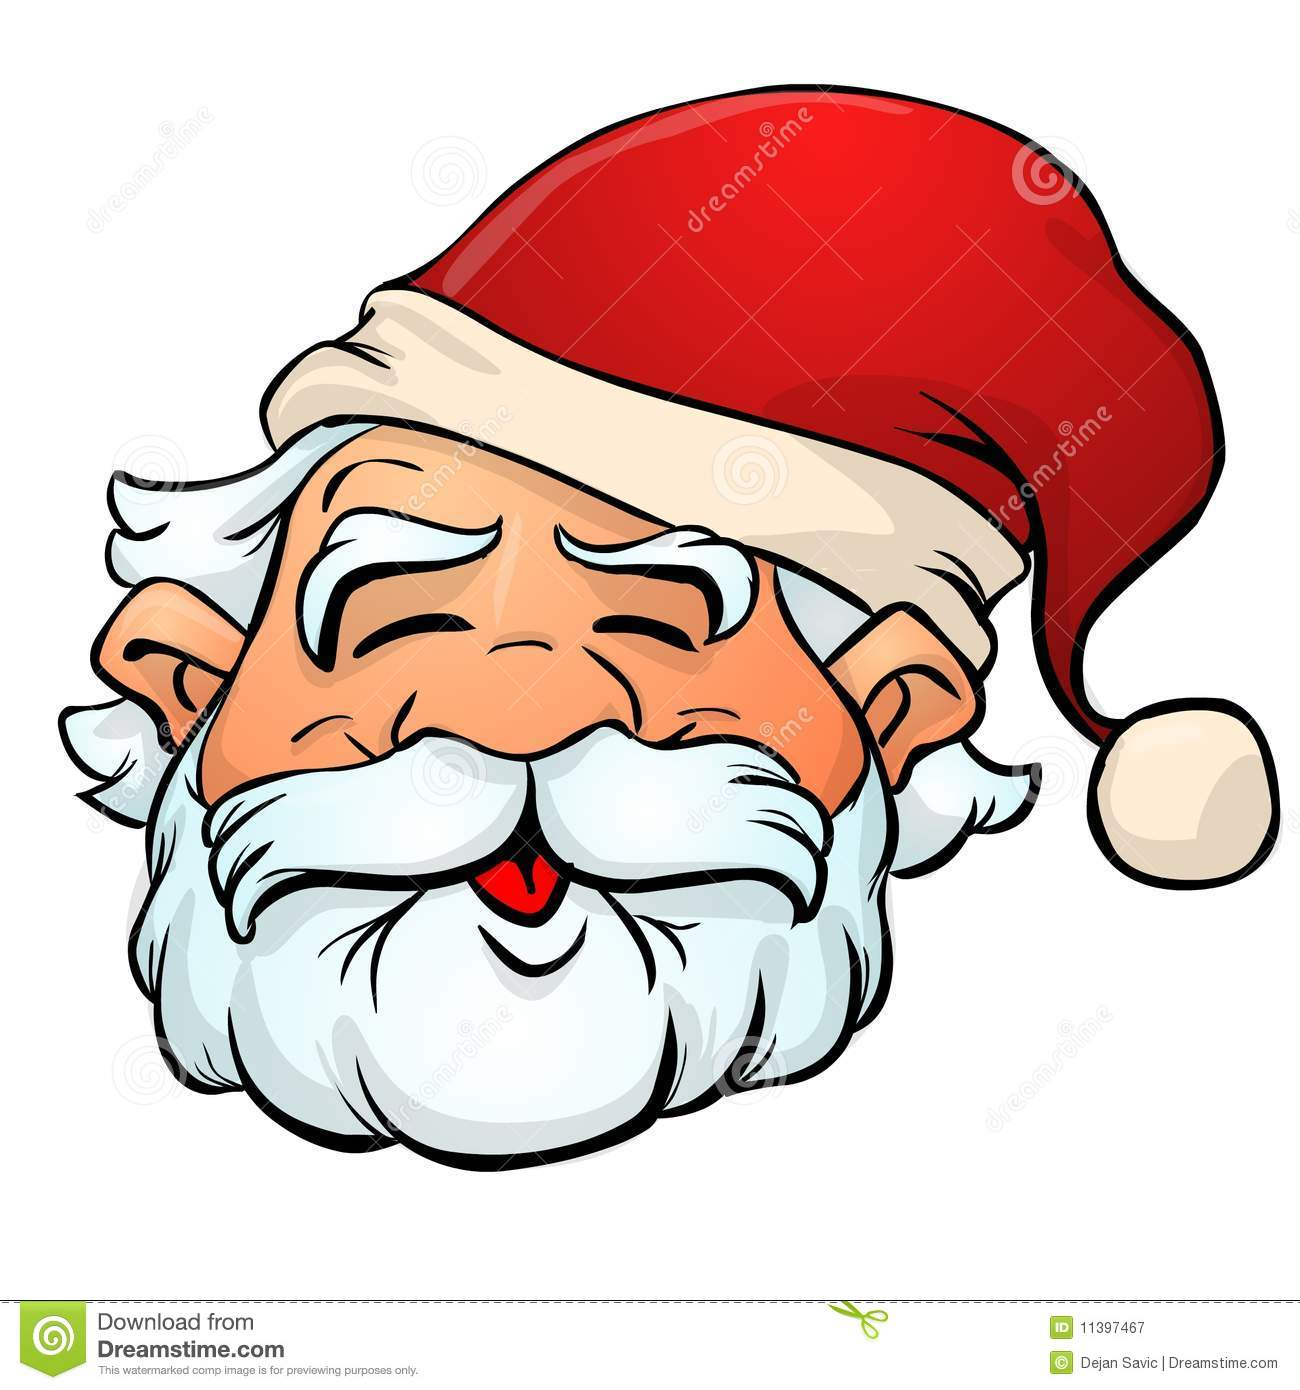 Dessin anim du p re no l illustration stock illustration du moustache 11397467 - Dessins de noel en couleur ...